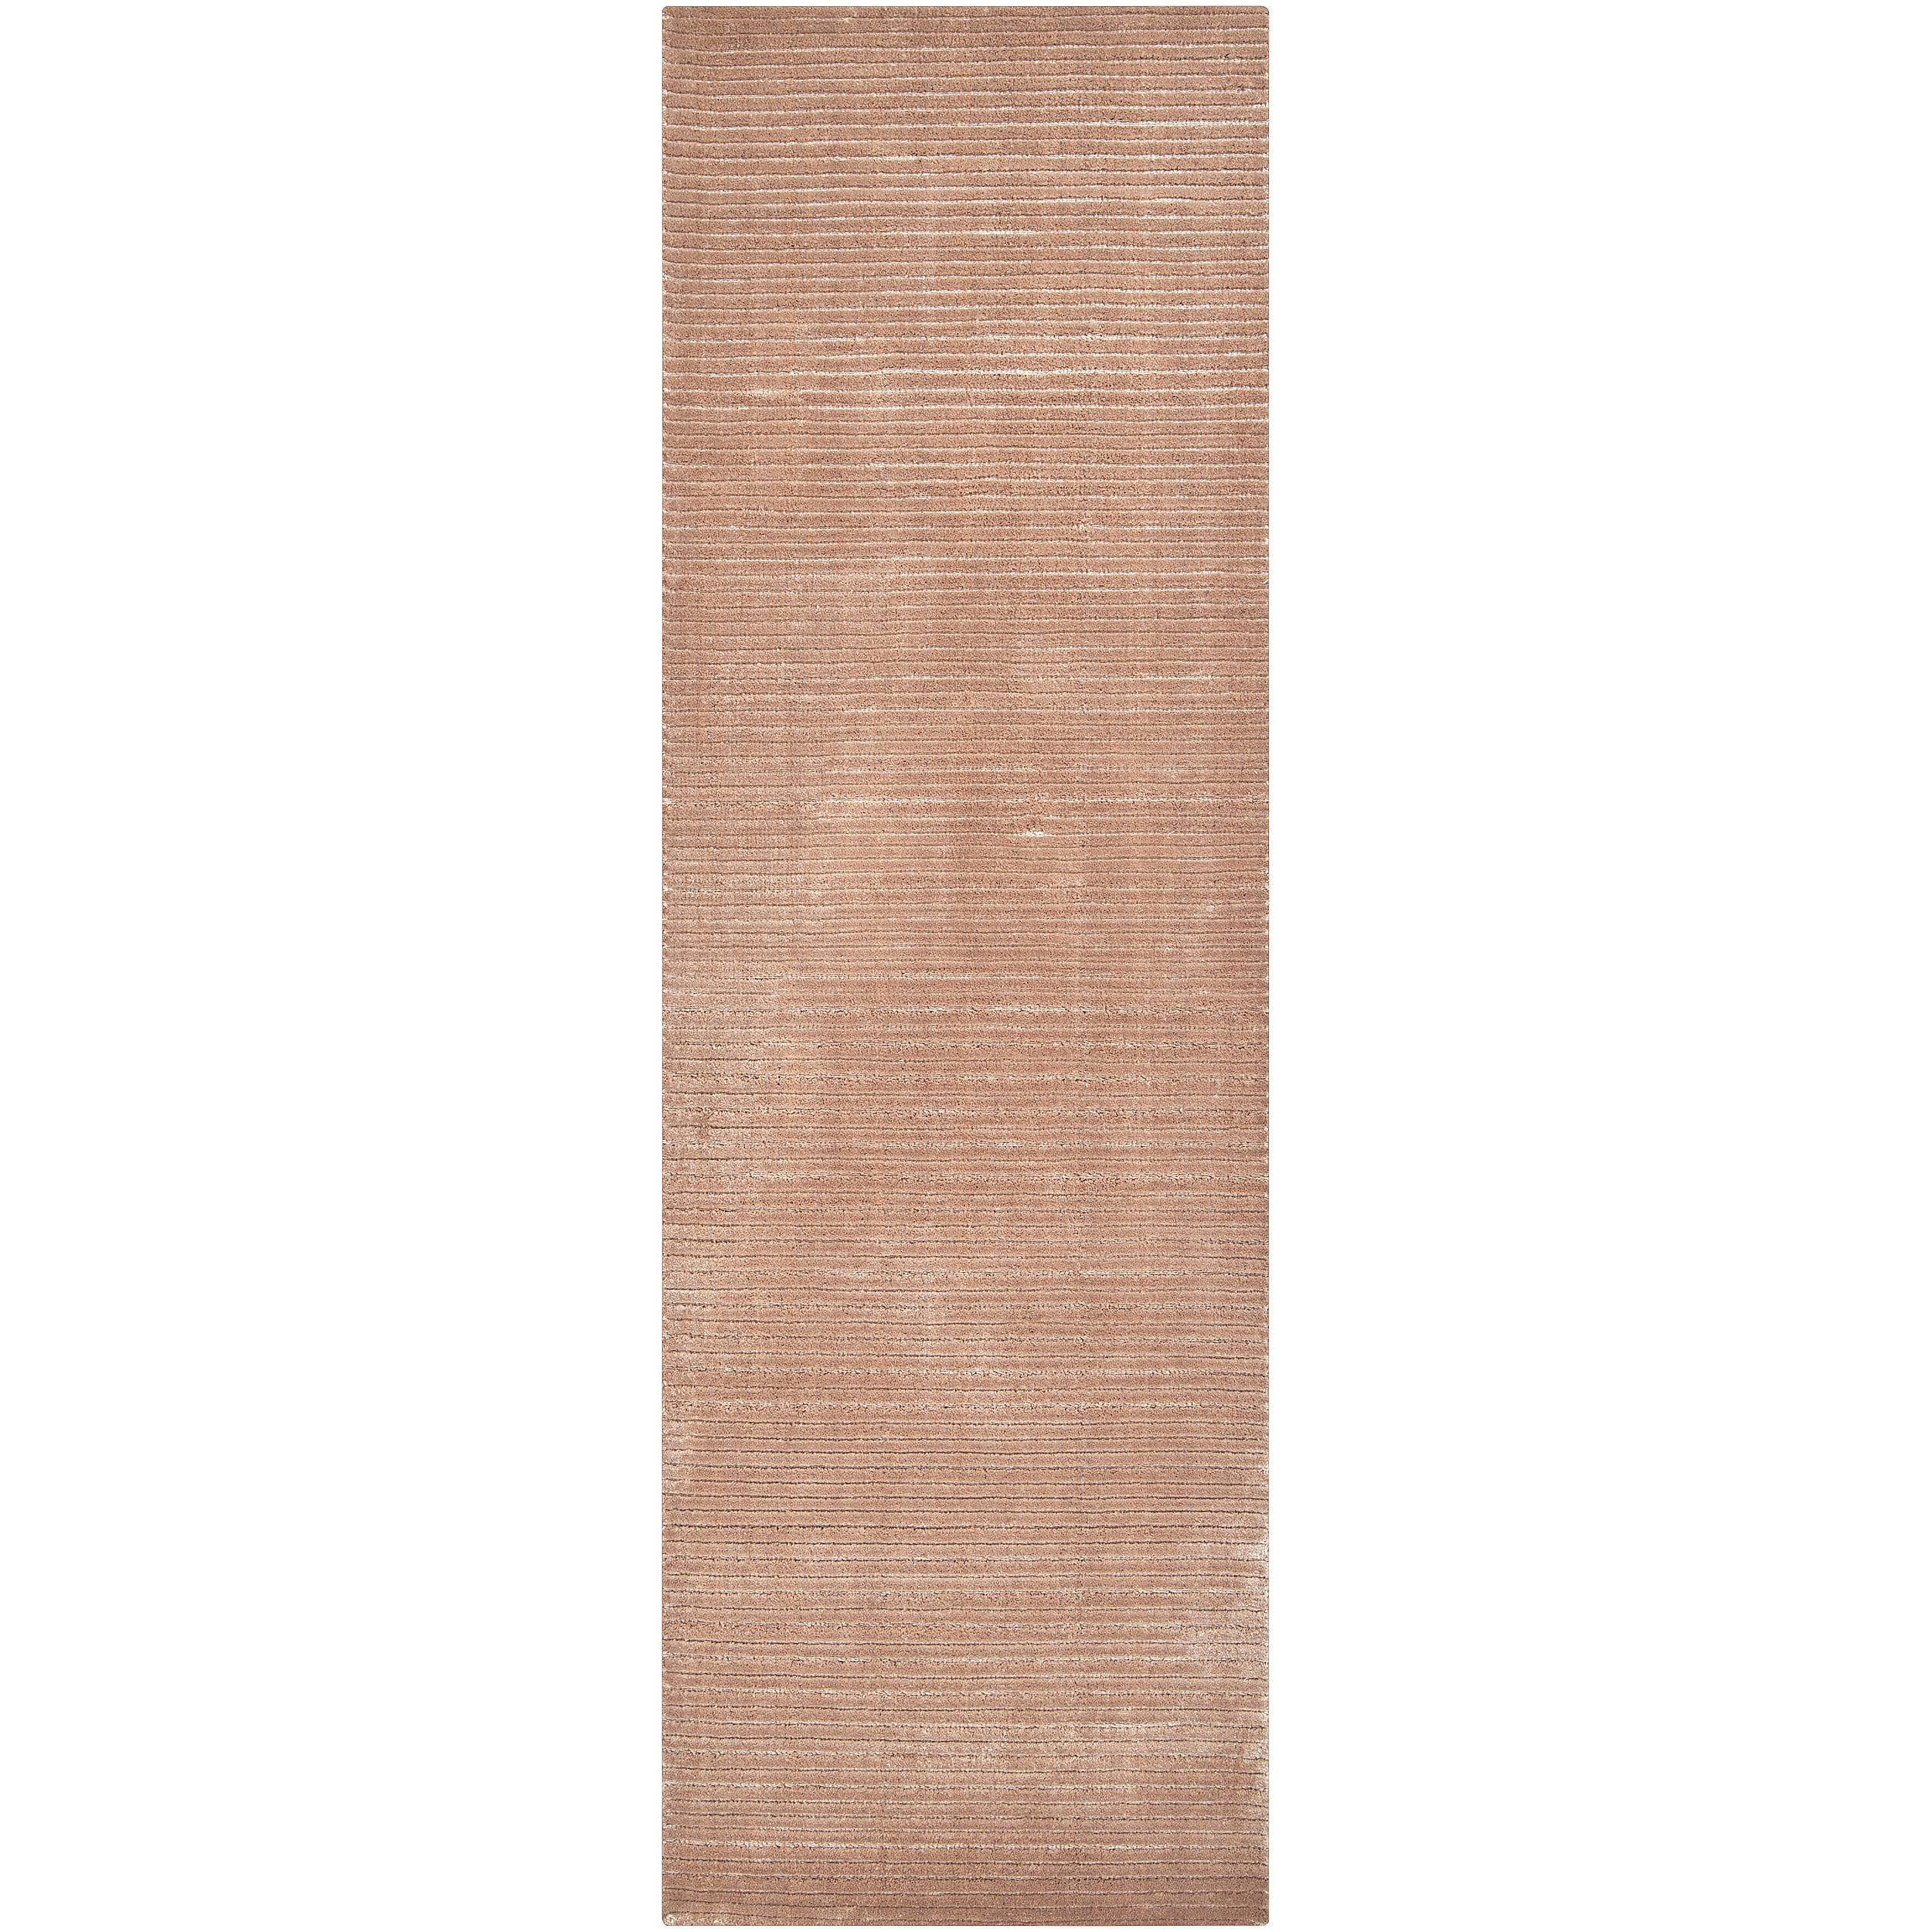 Hand-woven Solid Beige Casual Parroll1006 Rug (2'6 x 8')